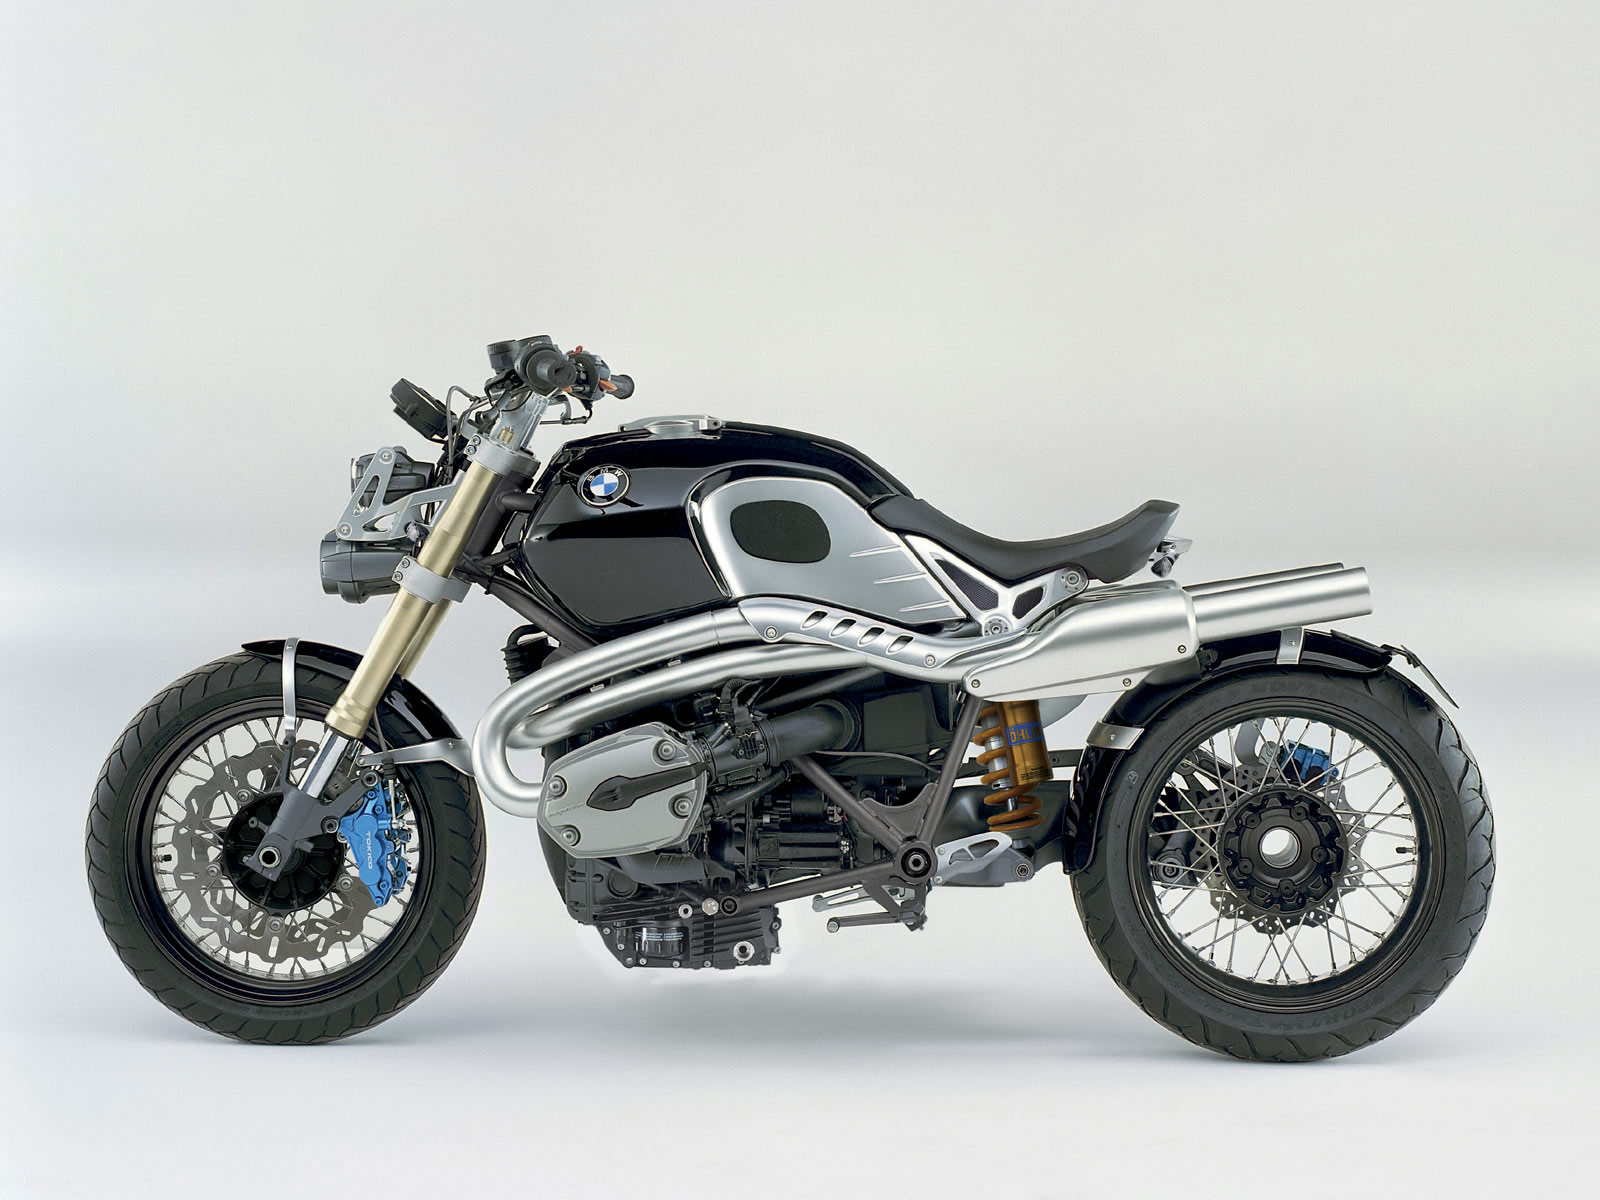 2009 BMW Lo Rider Concept motorcycle wallpaper